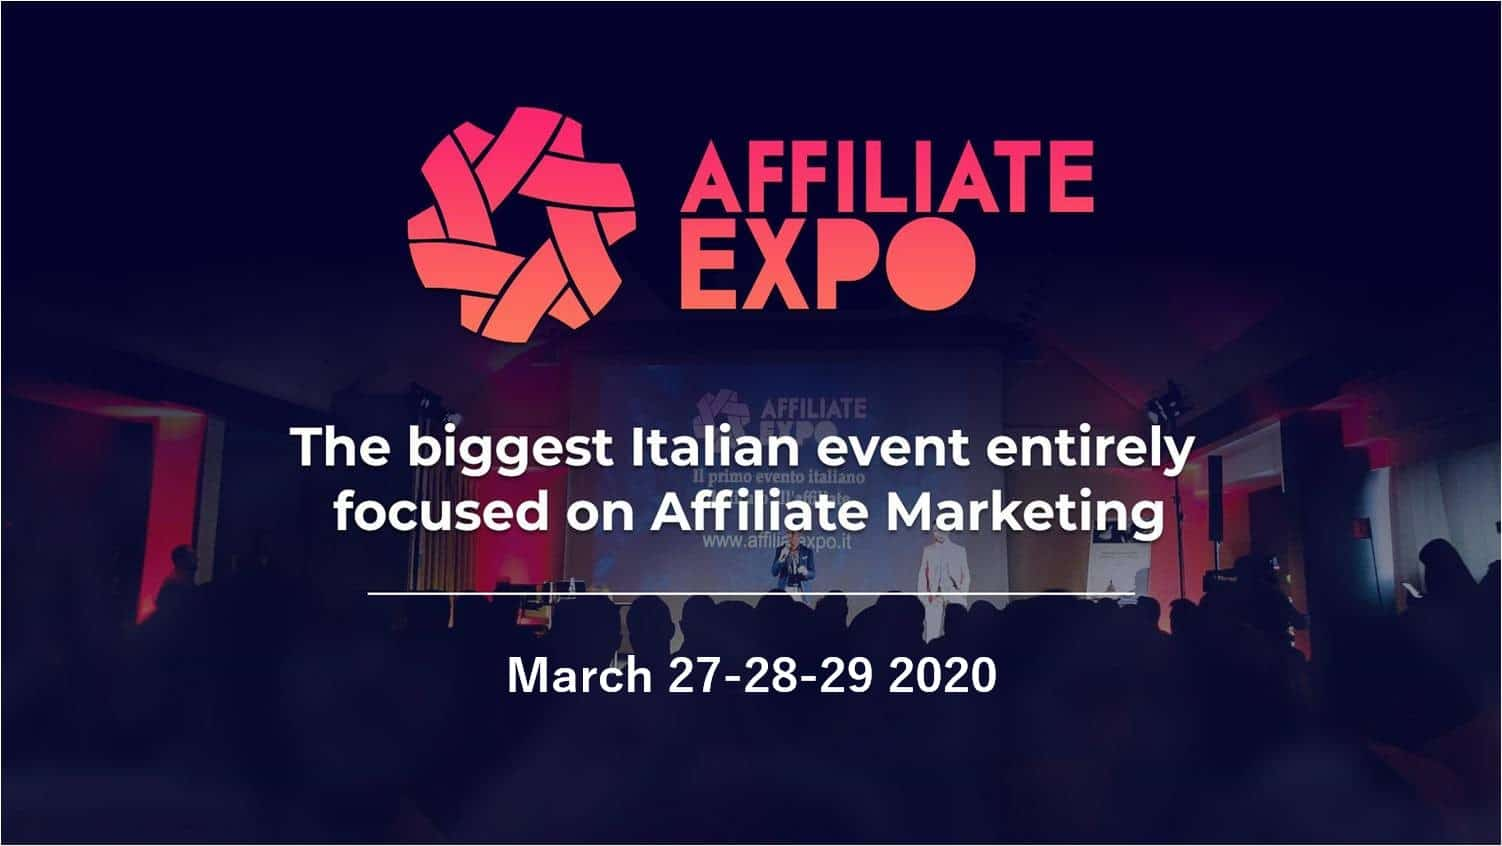 Affiliate Marketing Expo Italy